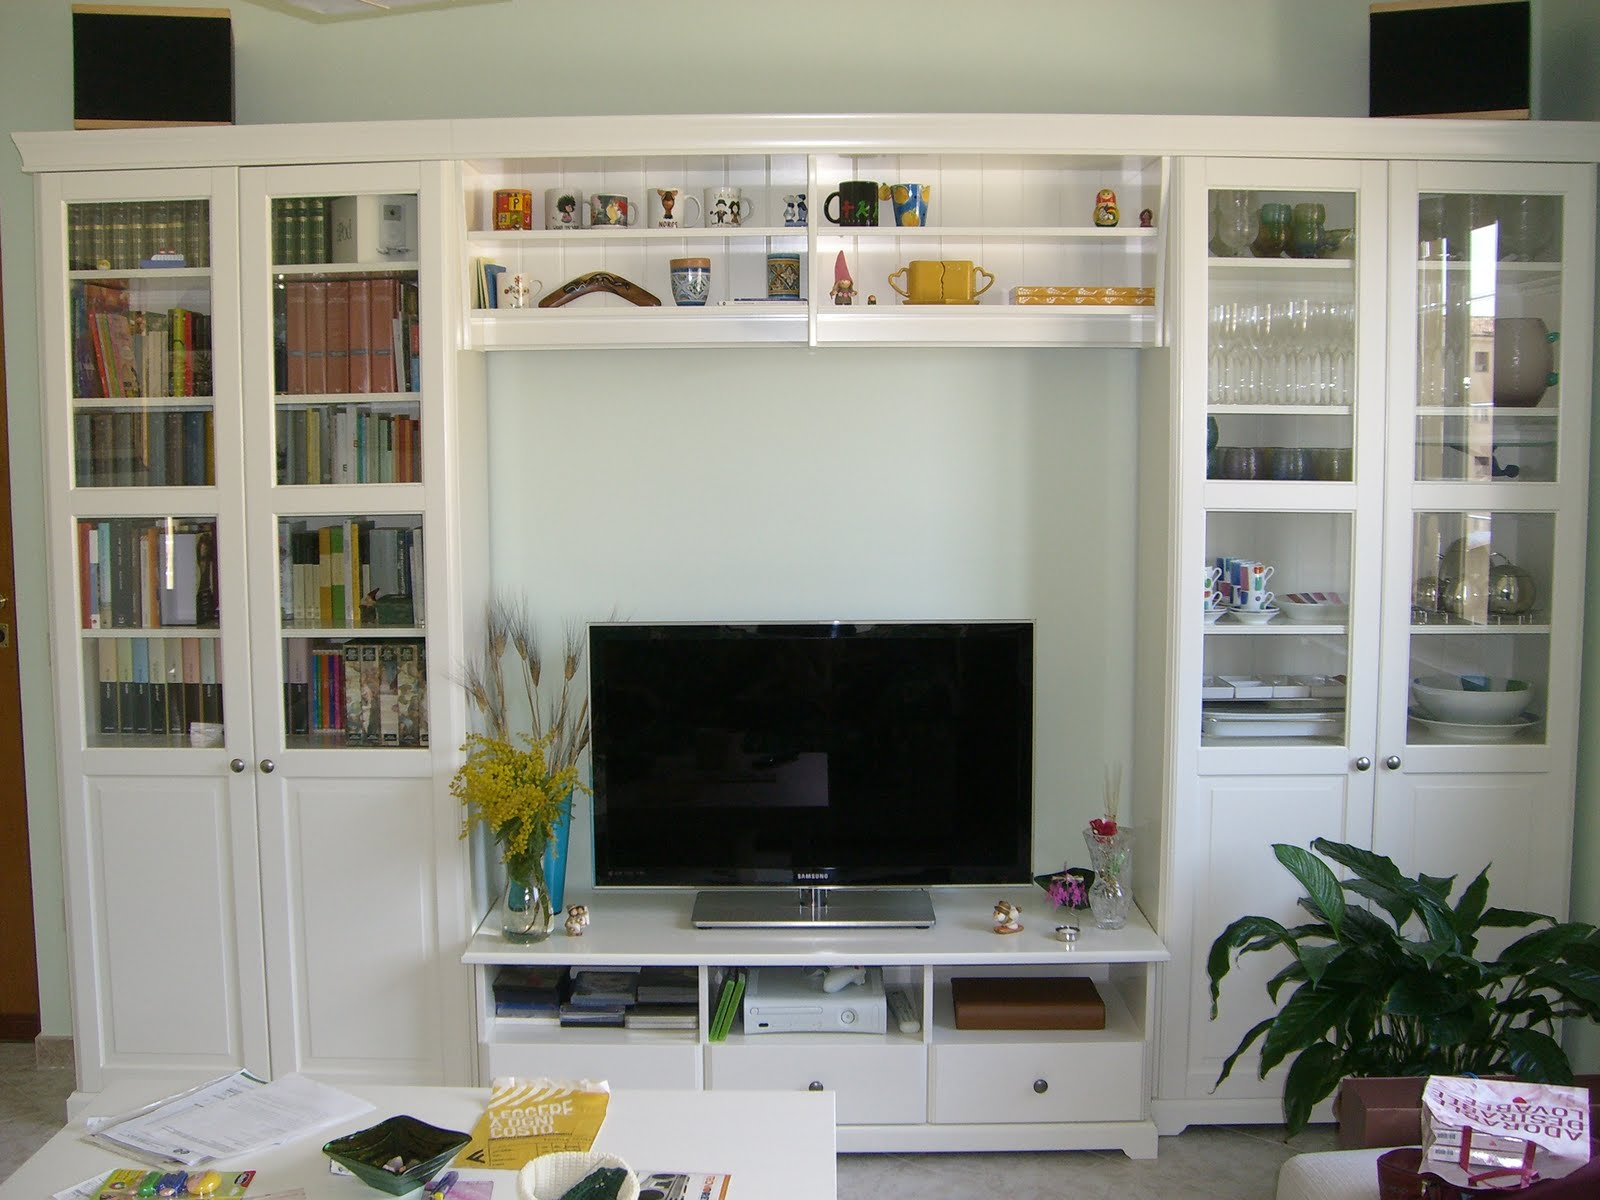 Ikea Liatorp Tv Stand Making The House A Home Pinterest  # Muebles Ikea Serie Liatorp